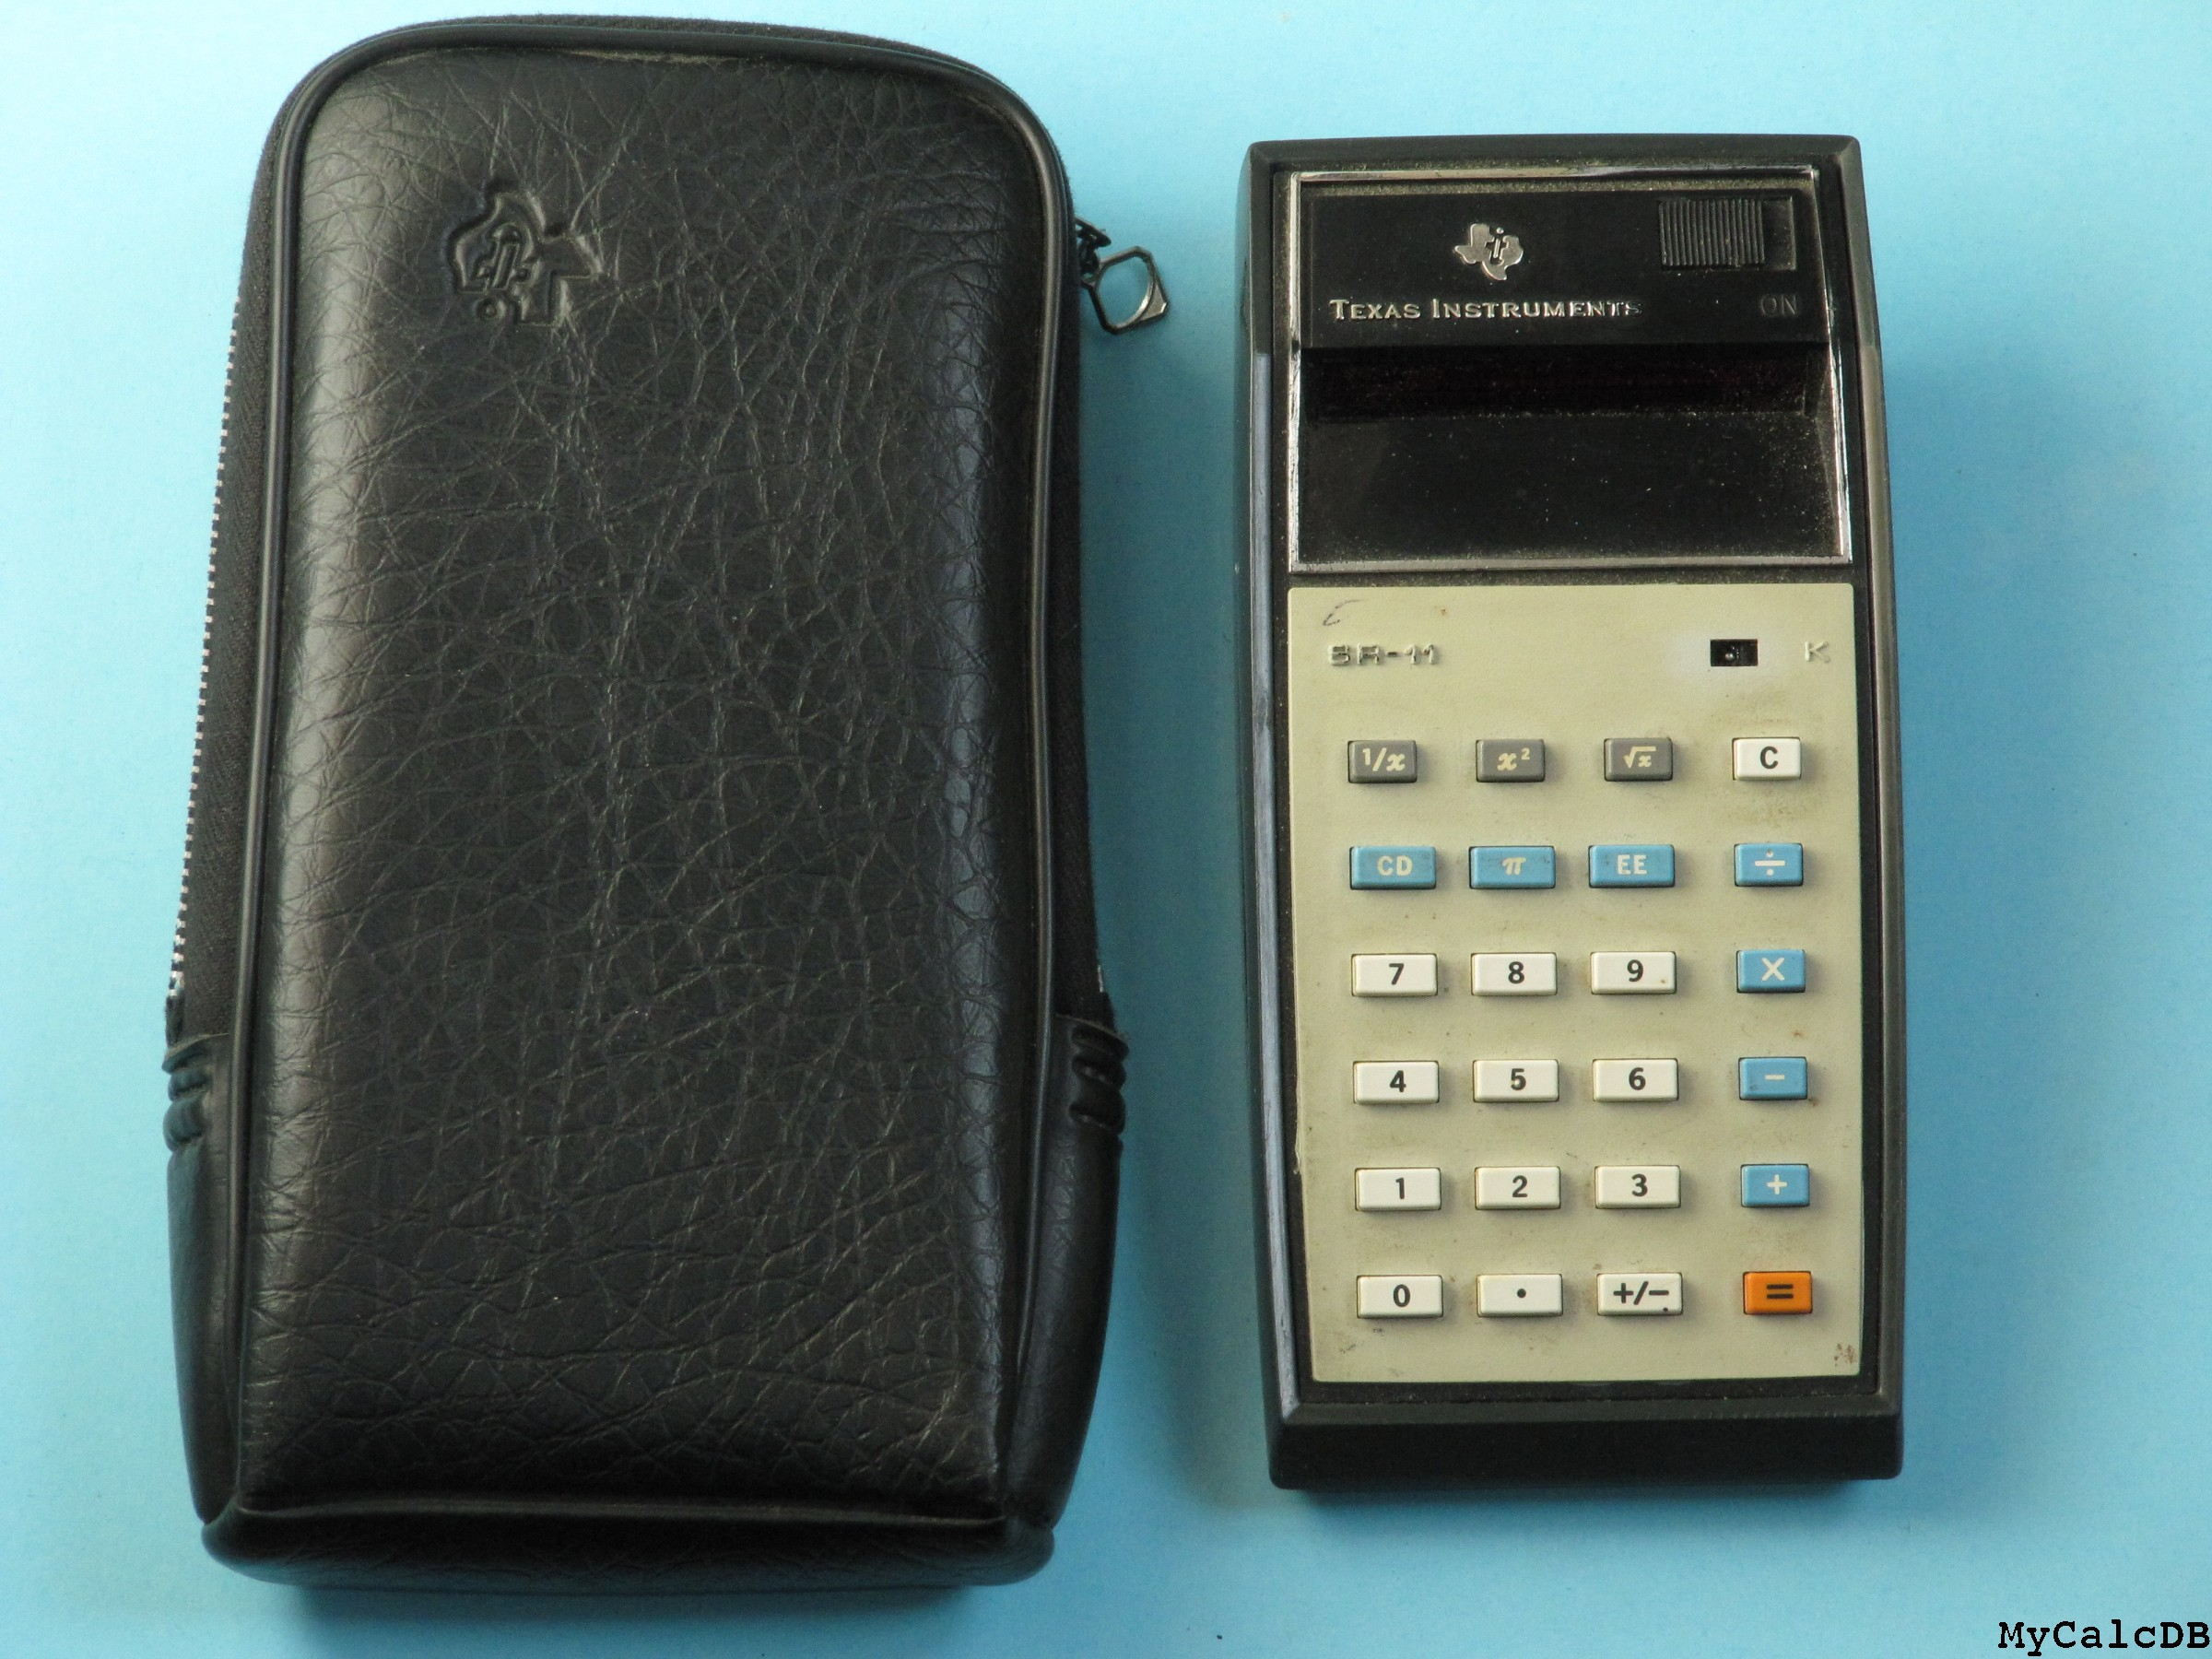 Texas Instruments SR-11